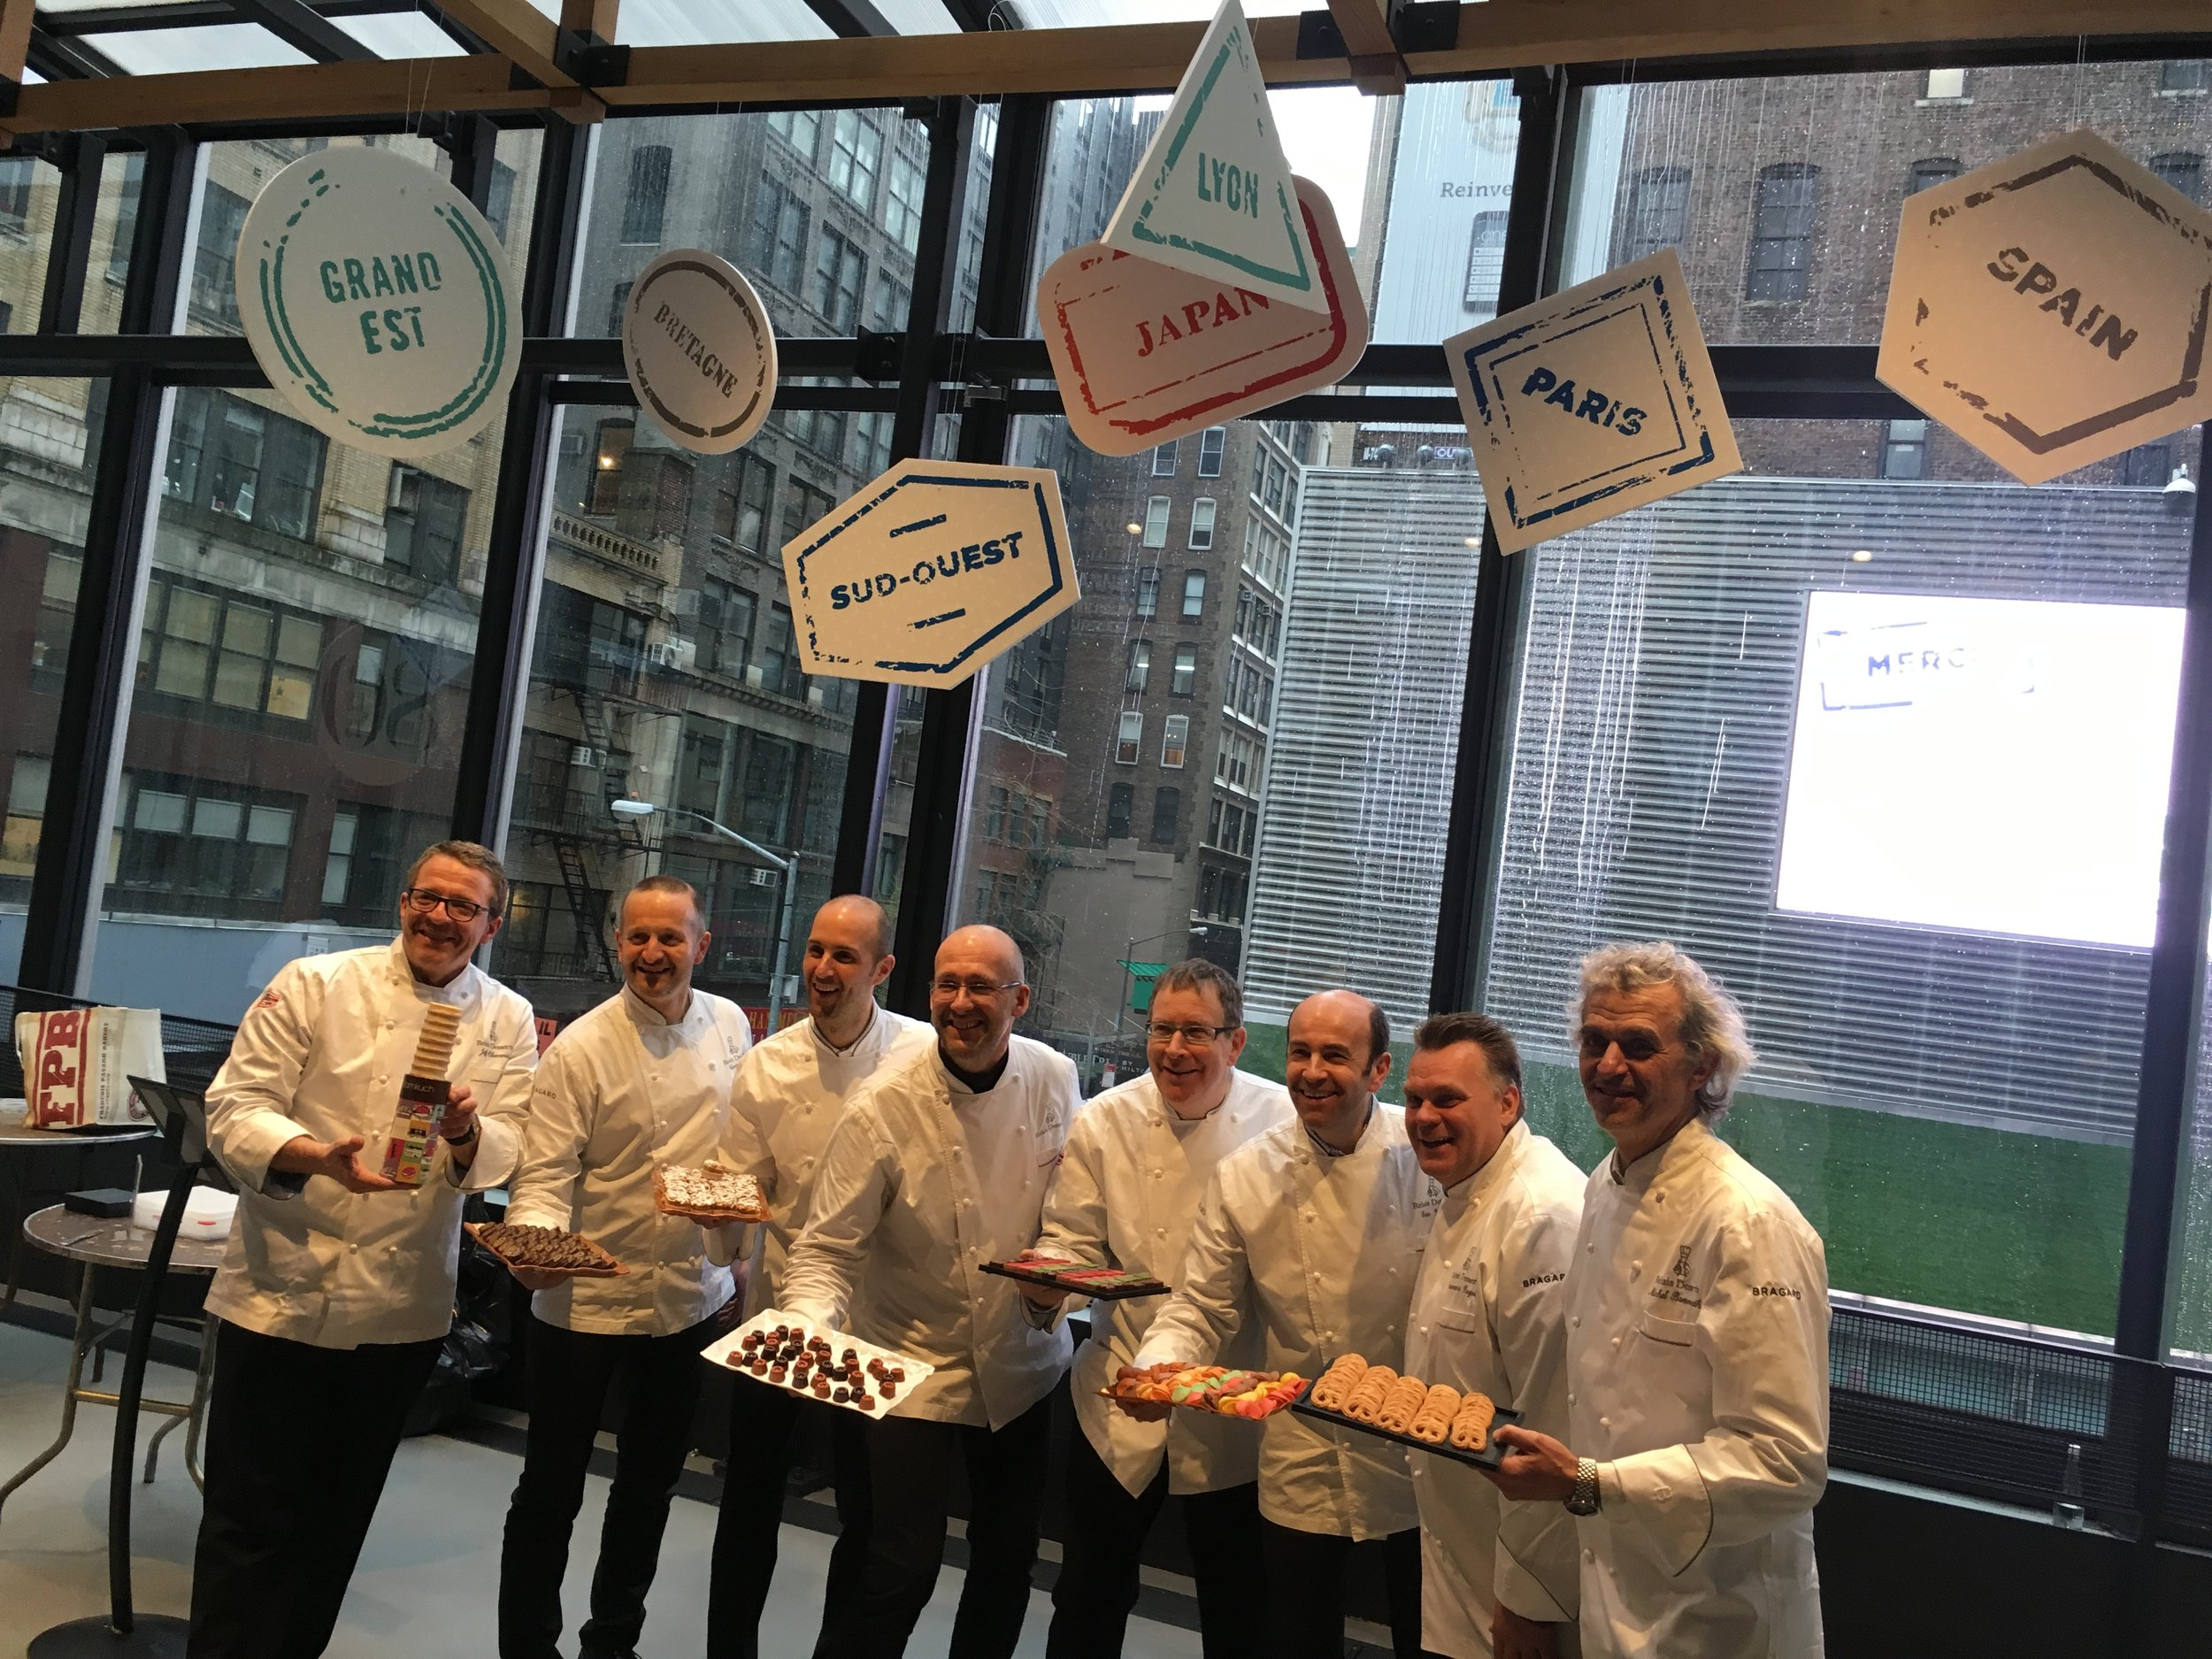 Around the World in 80 Sweets with Relais Chefs for City Harvest Annual Charity Event